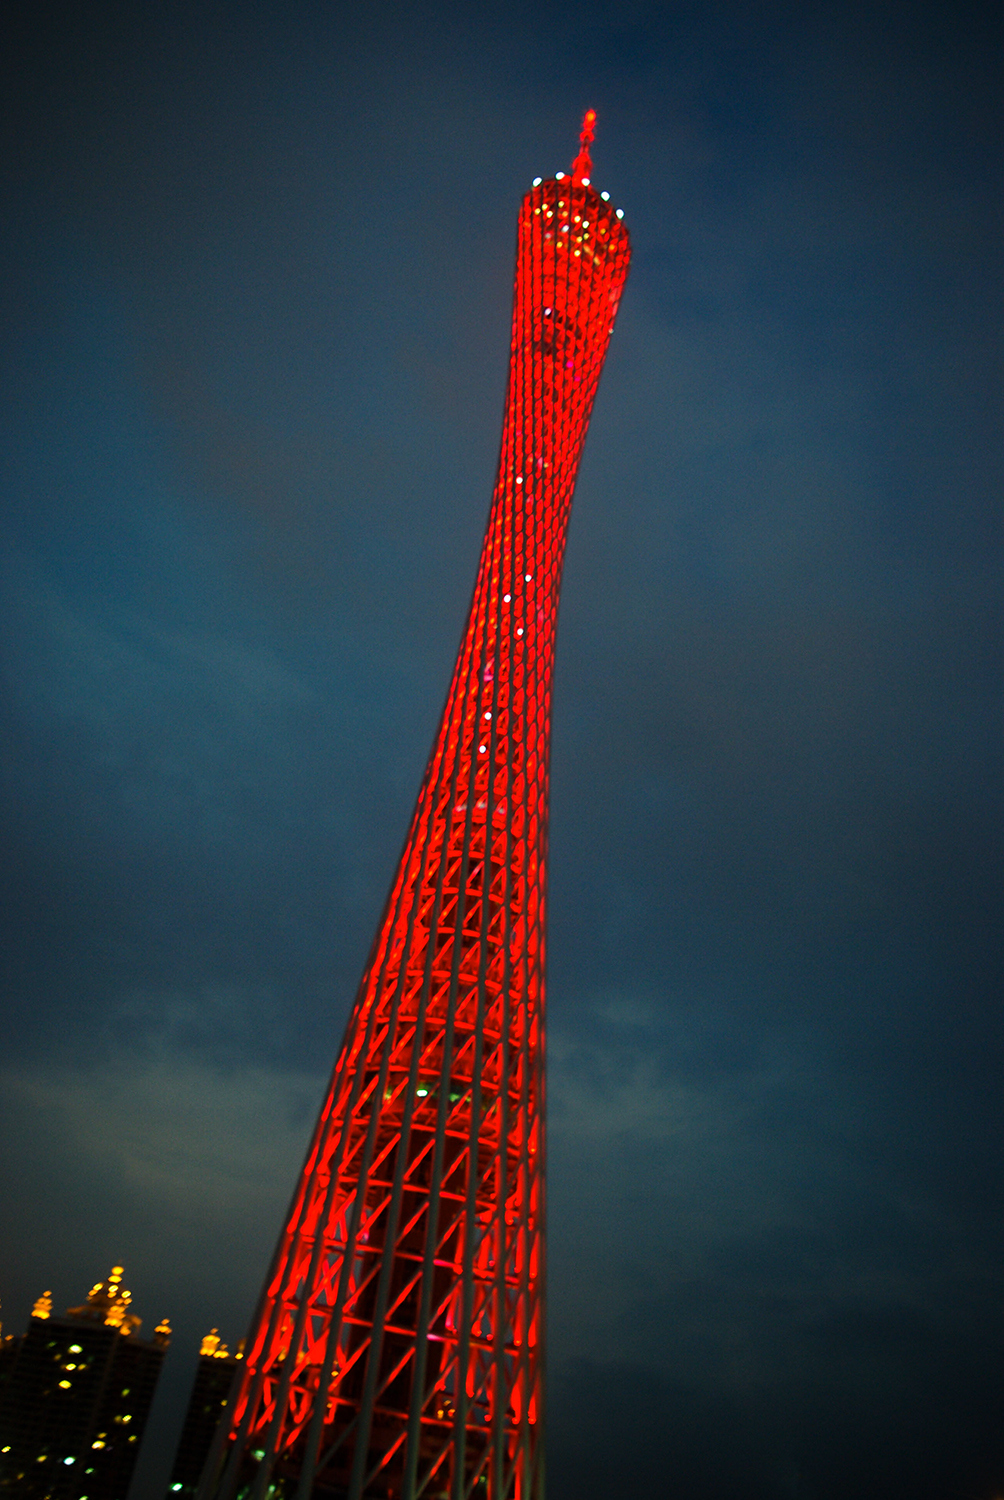 <p>Guangzhou's Canton Tower (formerly the self-defining TV Astronomical and Sightseeing Tower) is a twisting geometric latticework that climbs to a frightening 462 metres. Designed by Mark Hemel and Barbara Kuit, it topped out in 2011 and lights up in a swirling rainbow of colours every night.</p>